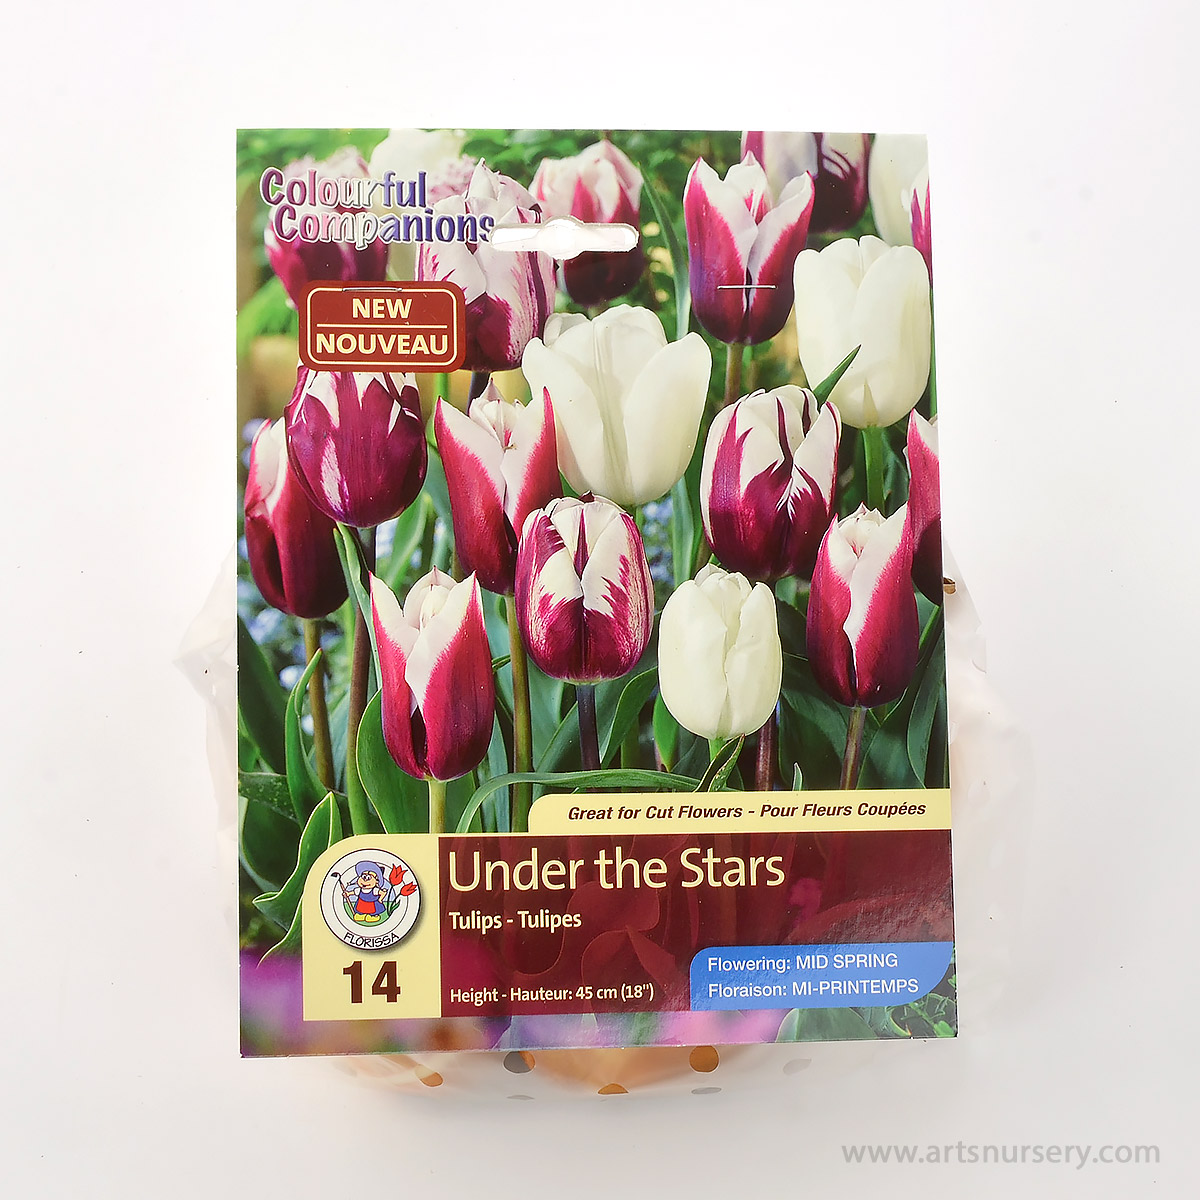 Colourful Companions Tulipa 'Under the Stars' Bulbs